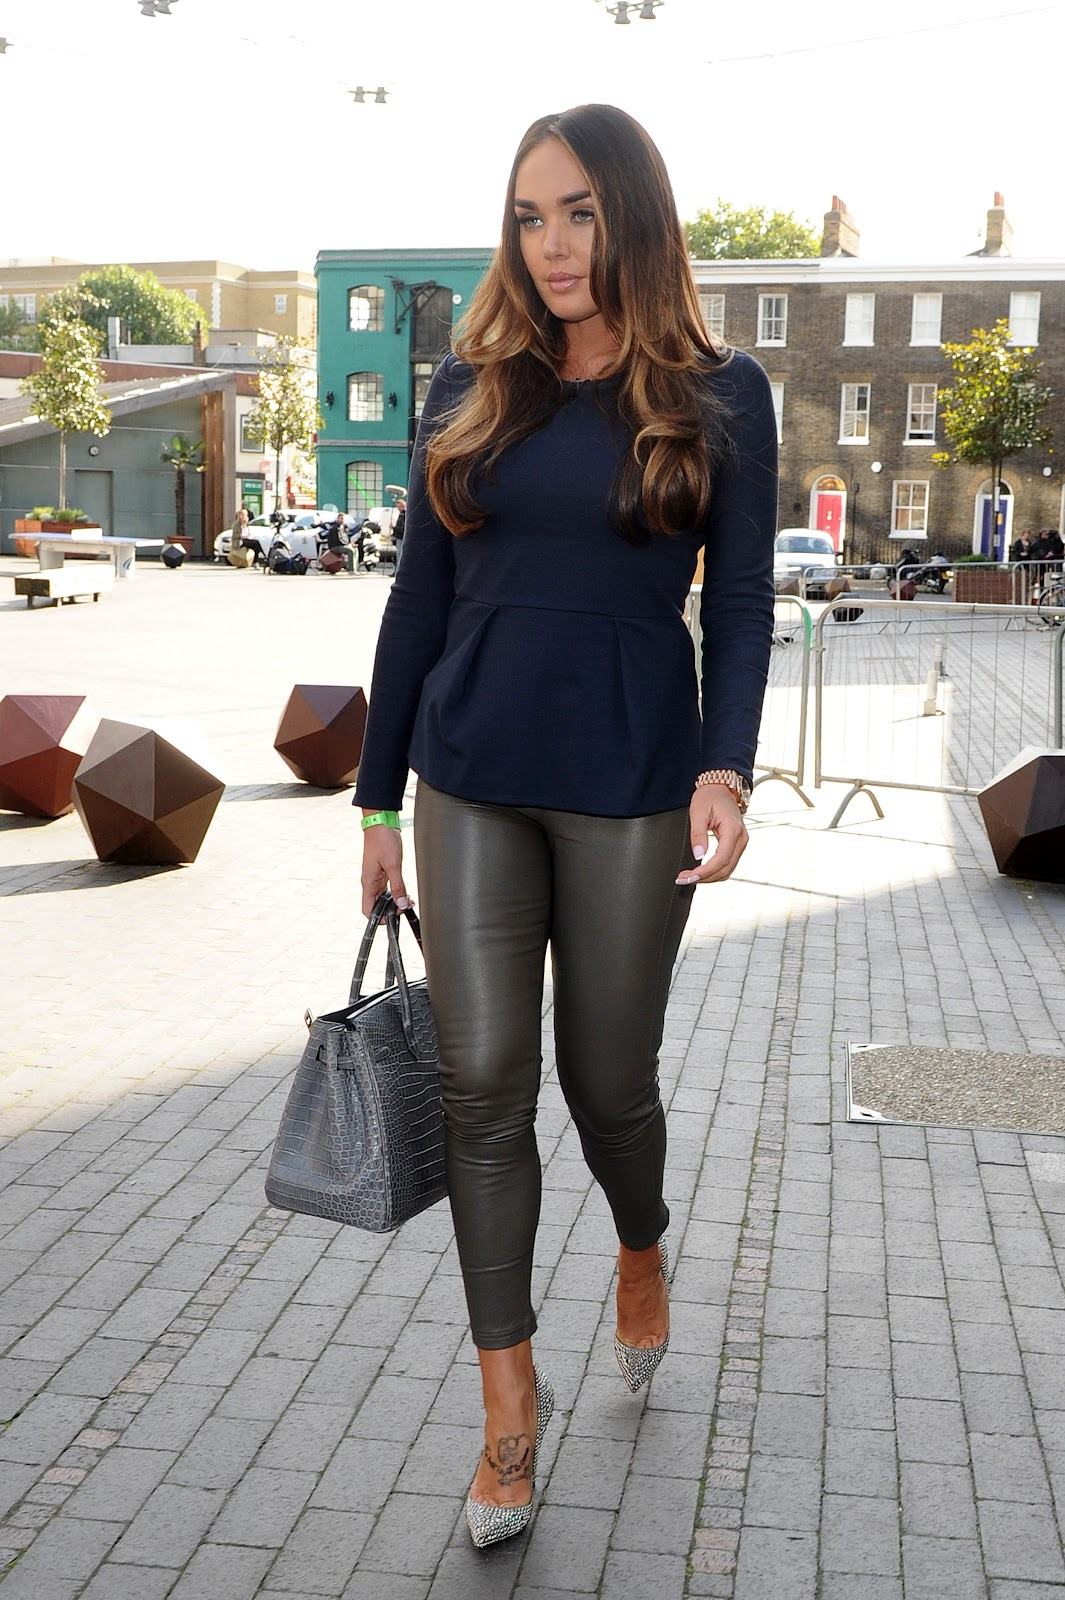 Tamara ecclestone leather pants tamara ecclestone leather dress tamara -  Tamara Ecclestone Hot In Tight Silver Pants